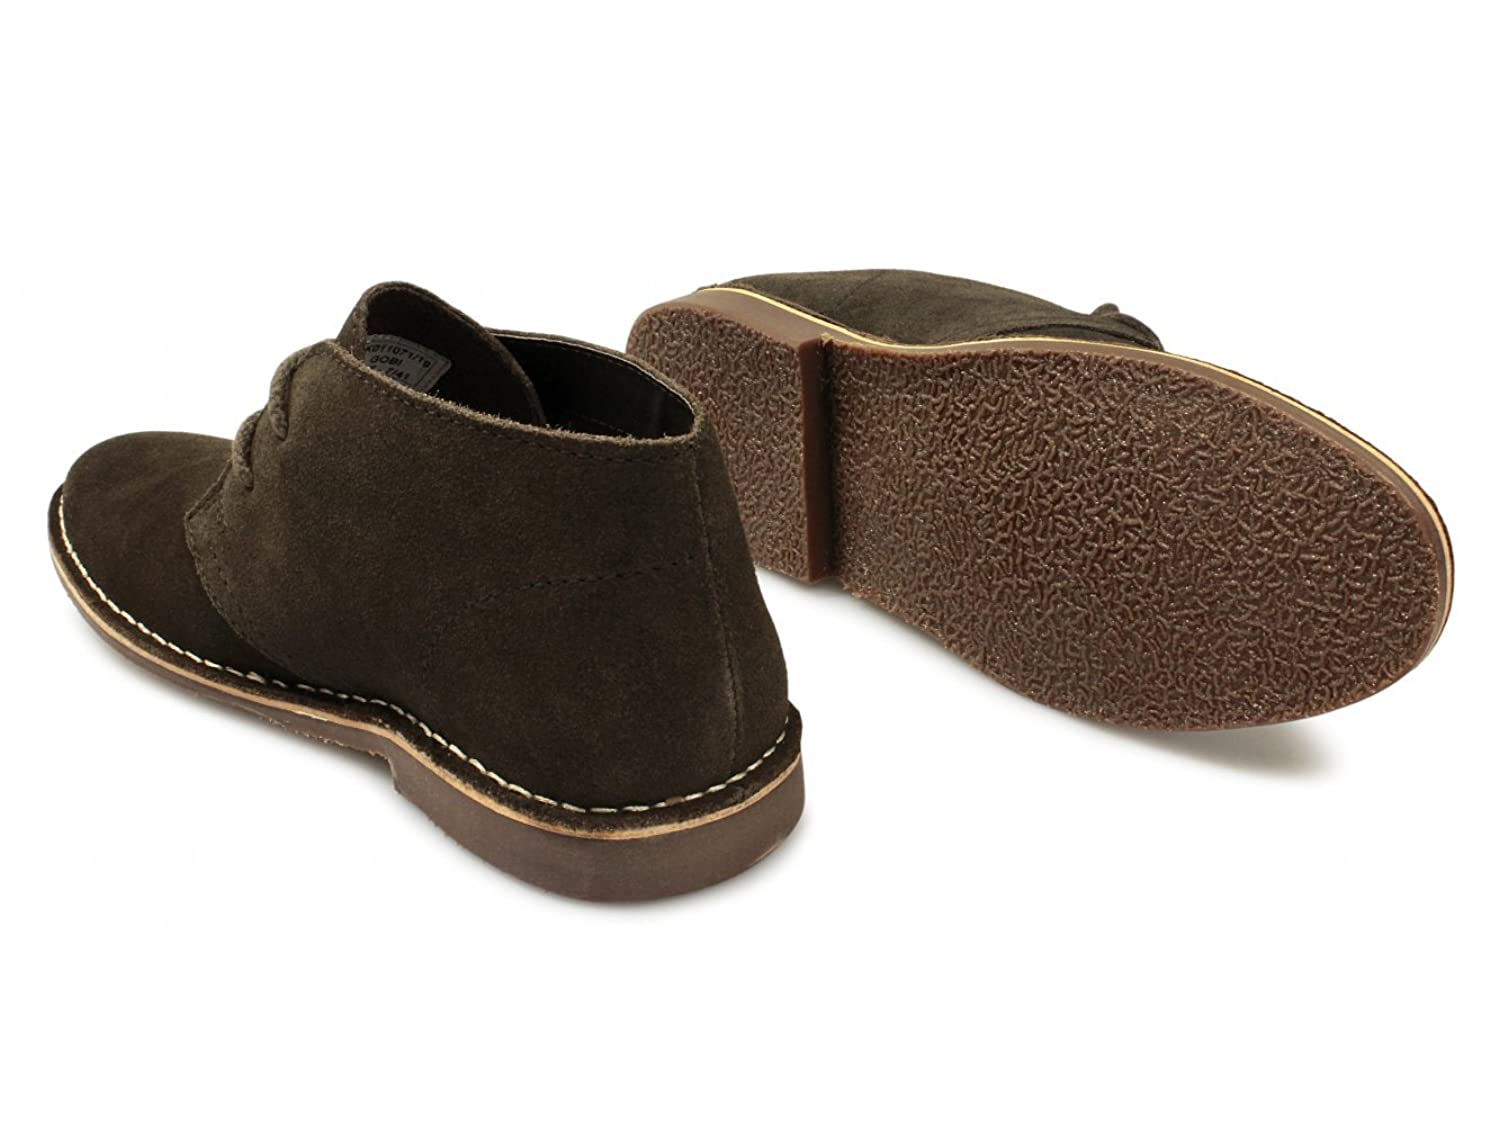 Red Tape GOBI II Mens Suede Leather Desert Boots Brown UK 9: Amazon.co.uk:  Shoes & Bags